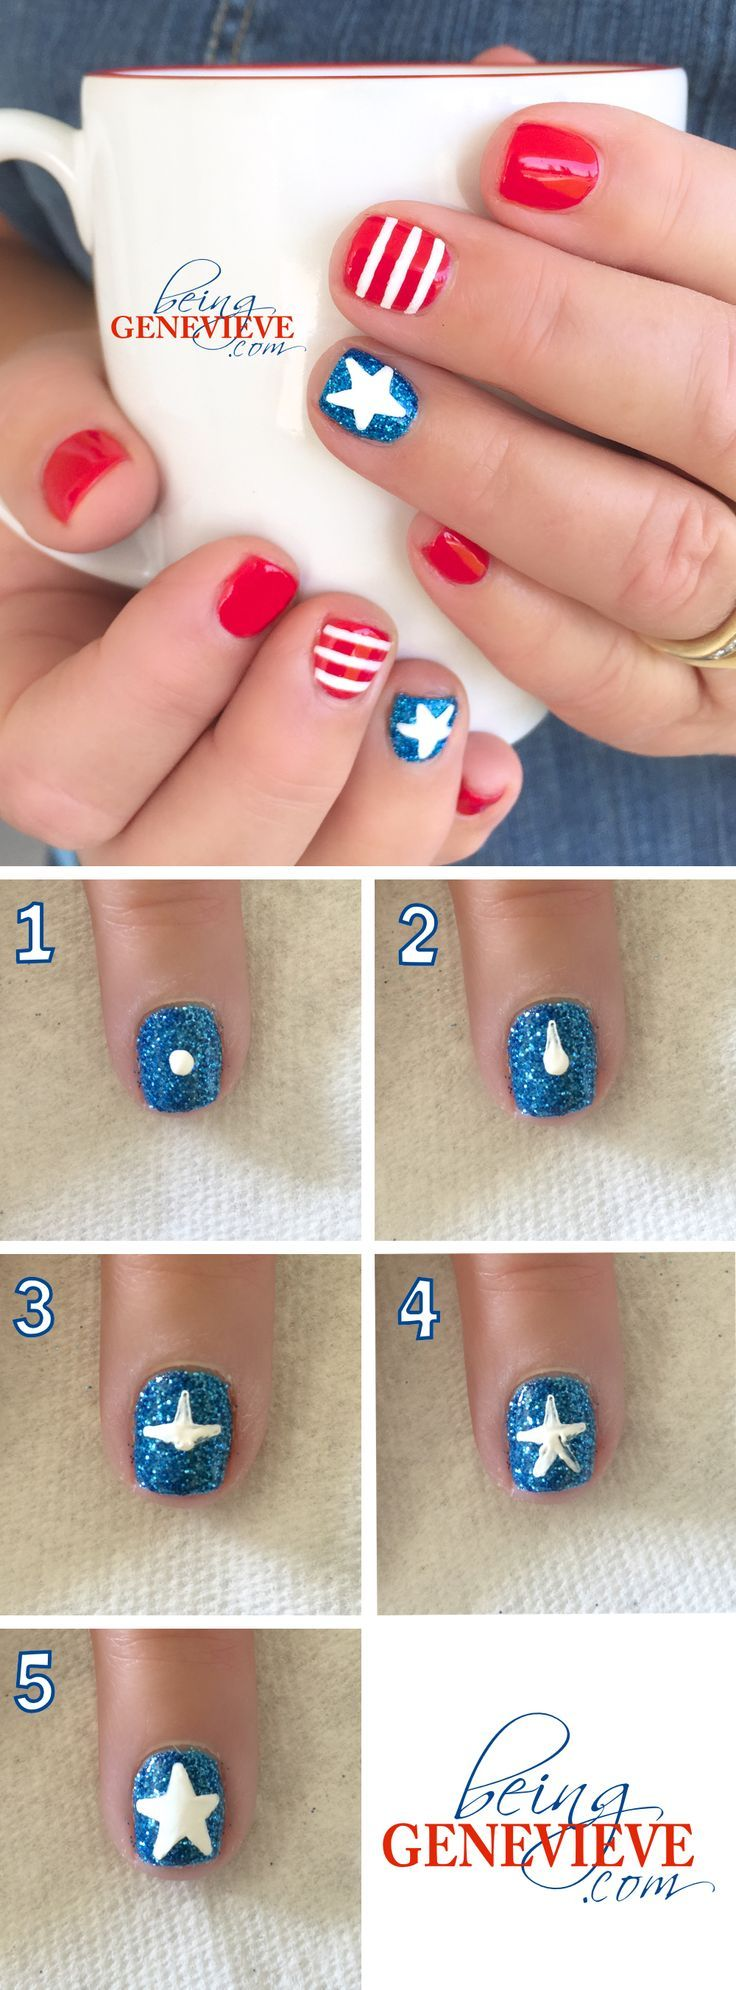 Stars & Stripes   Step-by-step tutorial on how to create this cute and simple patriotic nail art design. This is the perfect manicure for any 4th of July celebration . . .